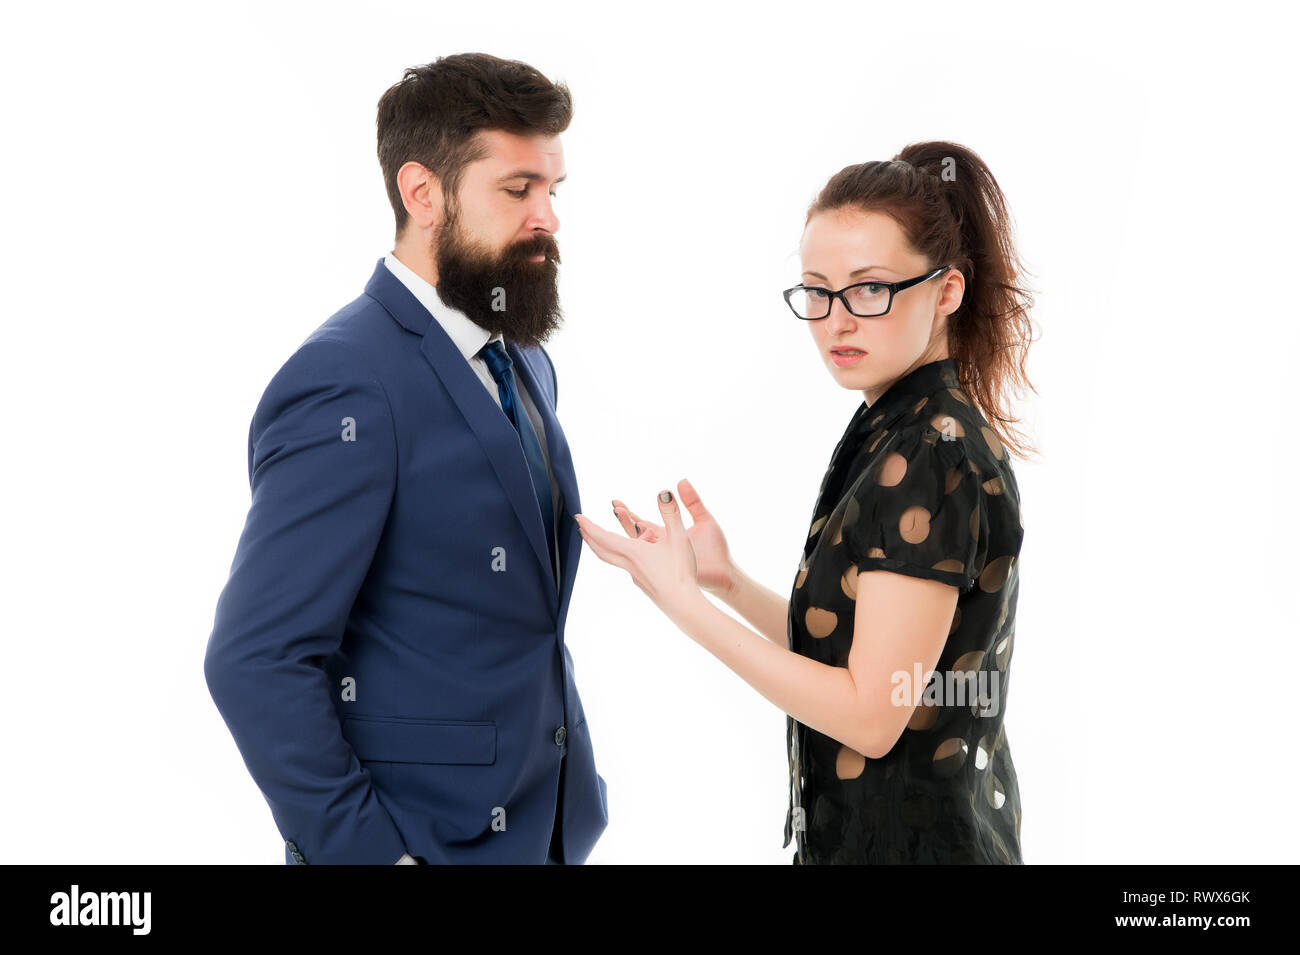 couple conflict and dispute. misunderstanding at work. discussion between businessman and woman. business conflict. argue between businessman and businesswoman. Problem solving. conflict management. - Stock Image